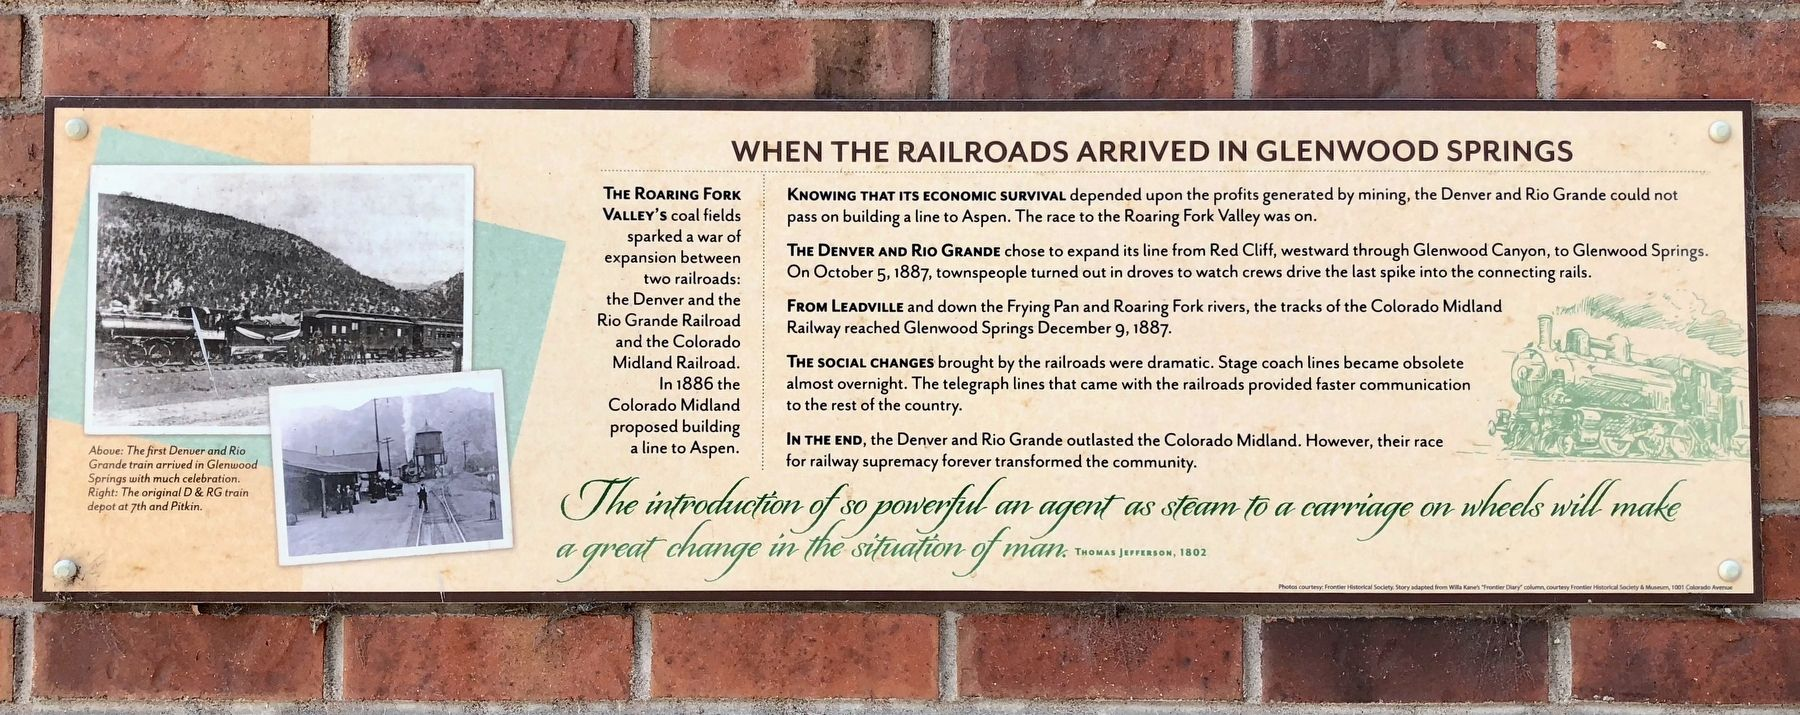 When the Railroads Arrived in Glenwood Springs Marker image. Click for full size.